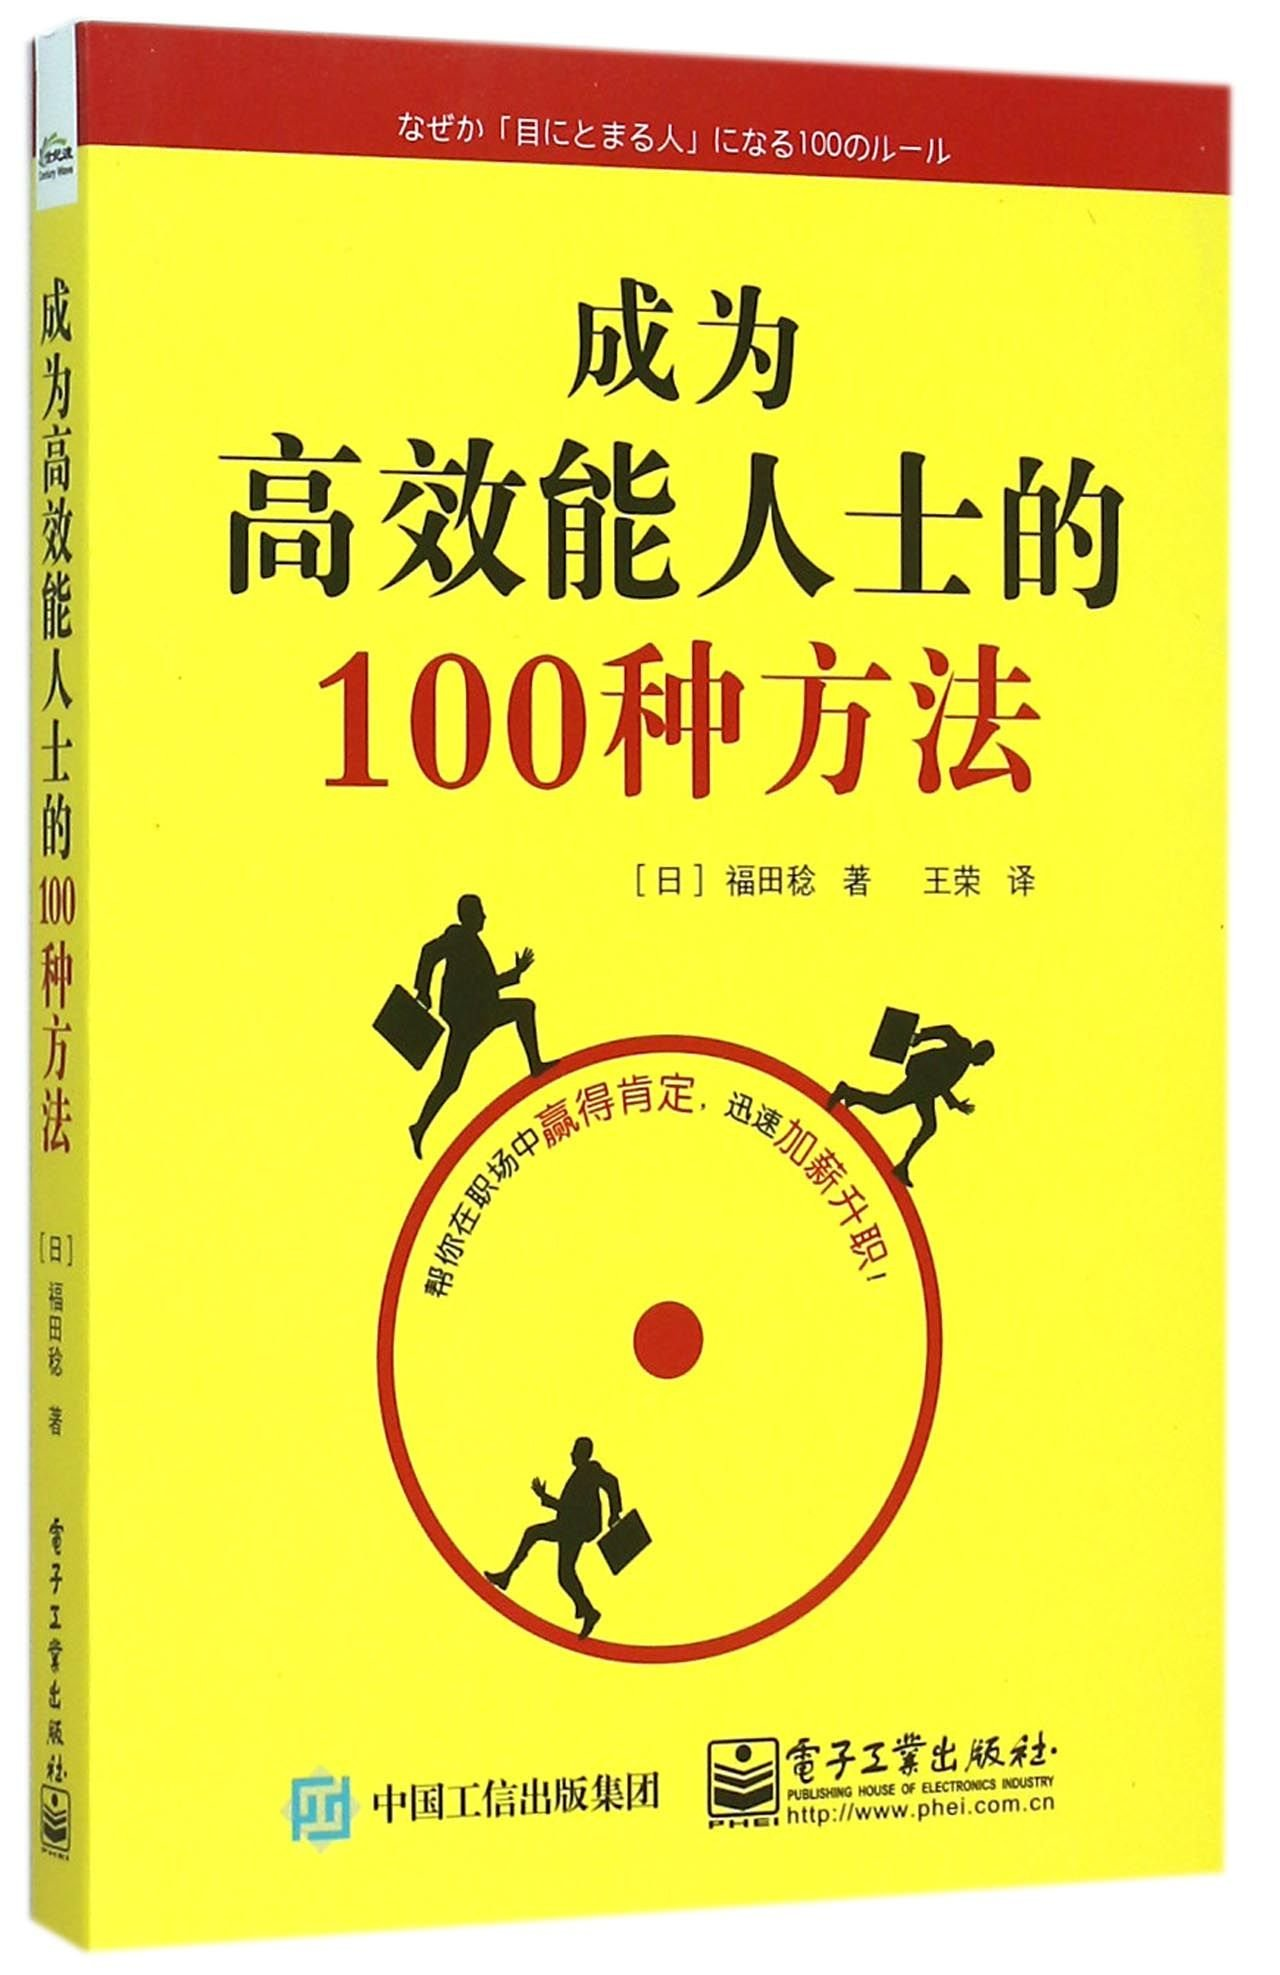 Download 100 Ways to be Efficient (Chinese Edition) ebook